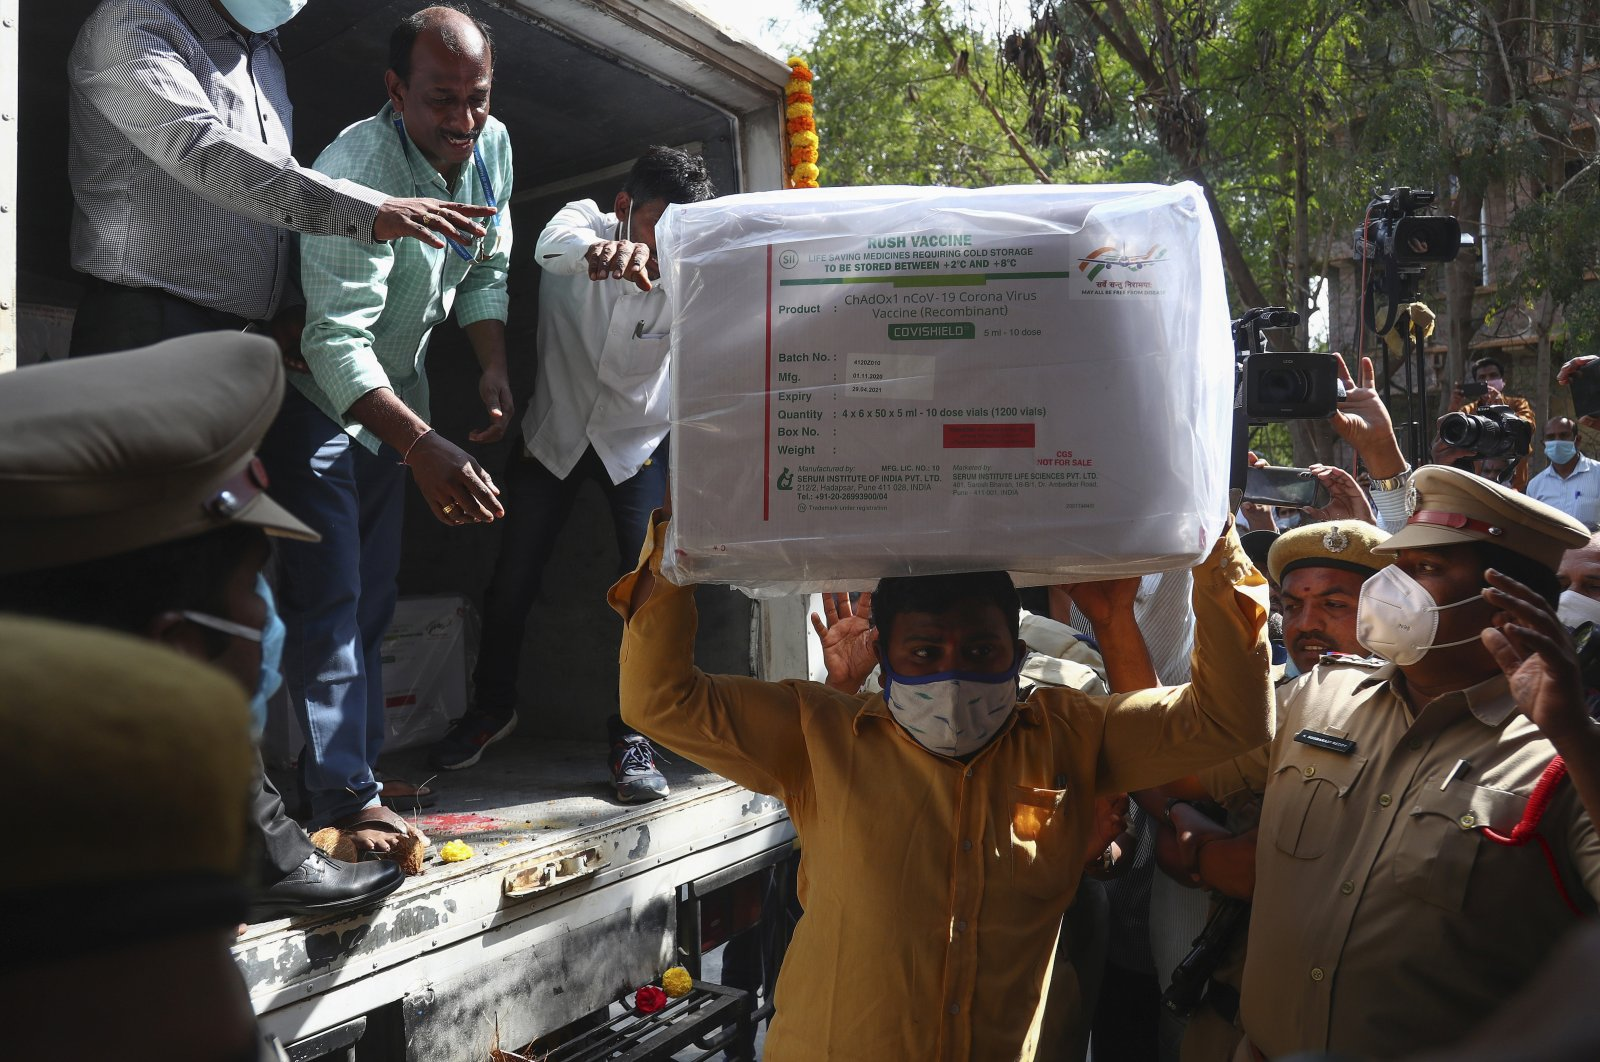 Health workers shift a box containing COVID-19 vaccines from a vehicle to a cold storage at Commissionerate of Health and Family Welfare in Hyderabad, India, Jan. 12, 2021. (AP Photo)